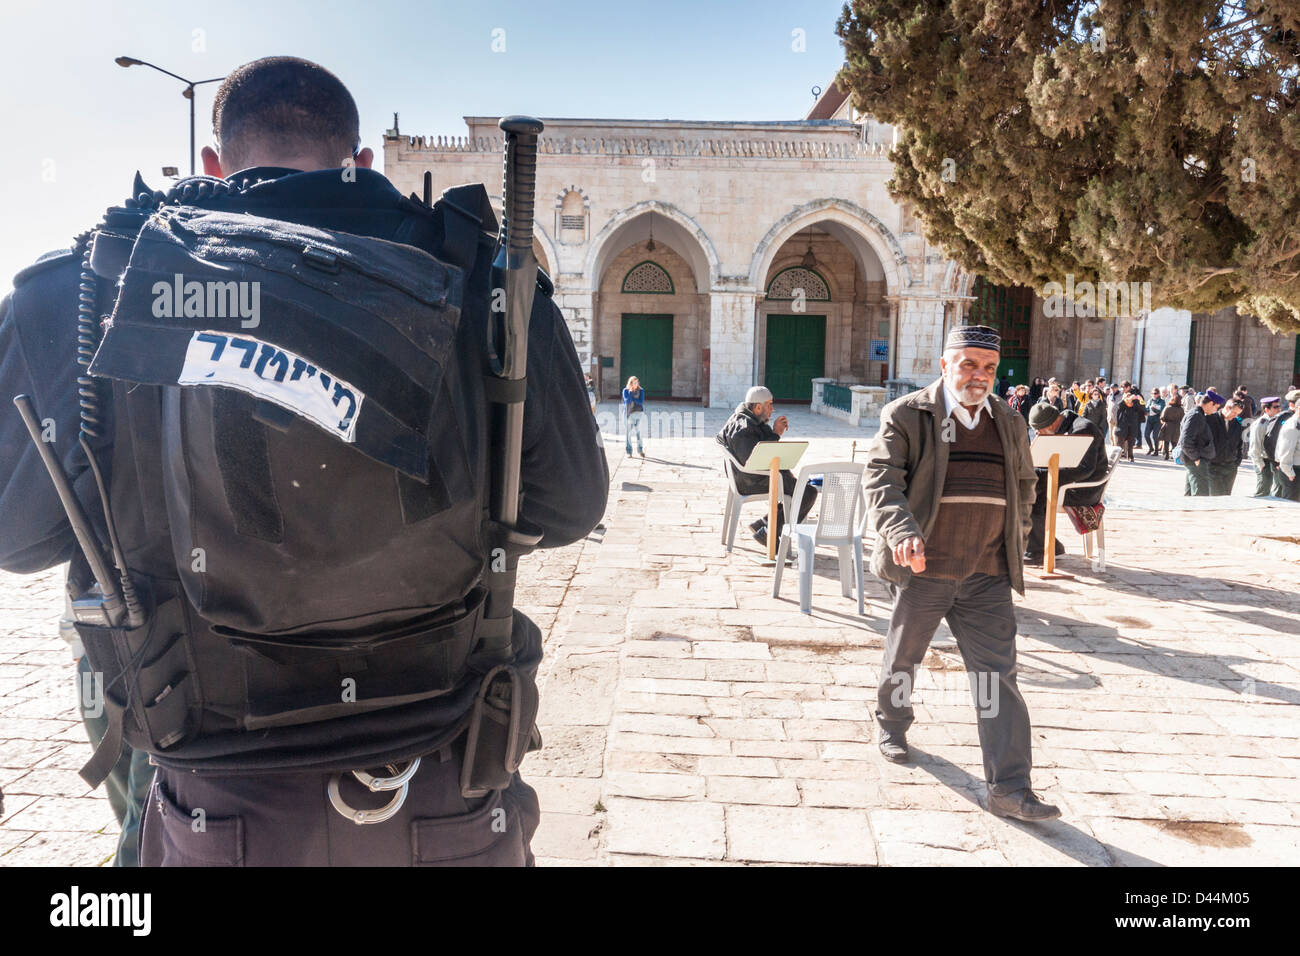 Temple Mount, Jerusalem, Israel. A policemen and and Arab man near the Al-Aqsa Mosque - Stock Image